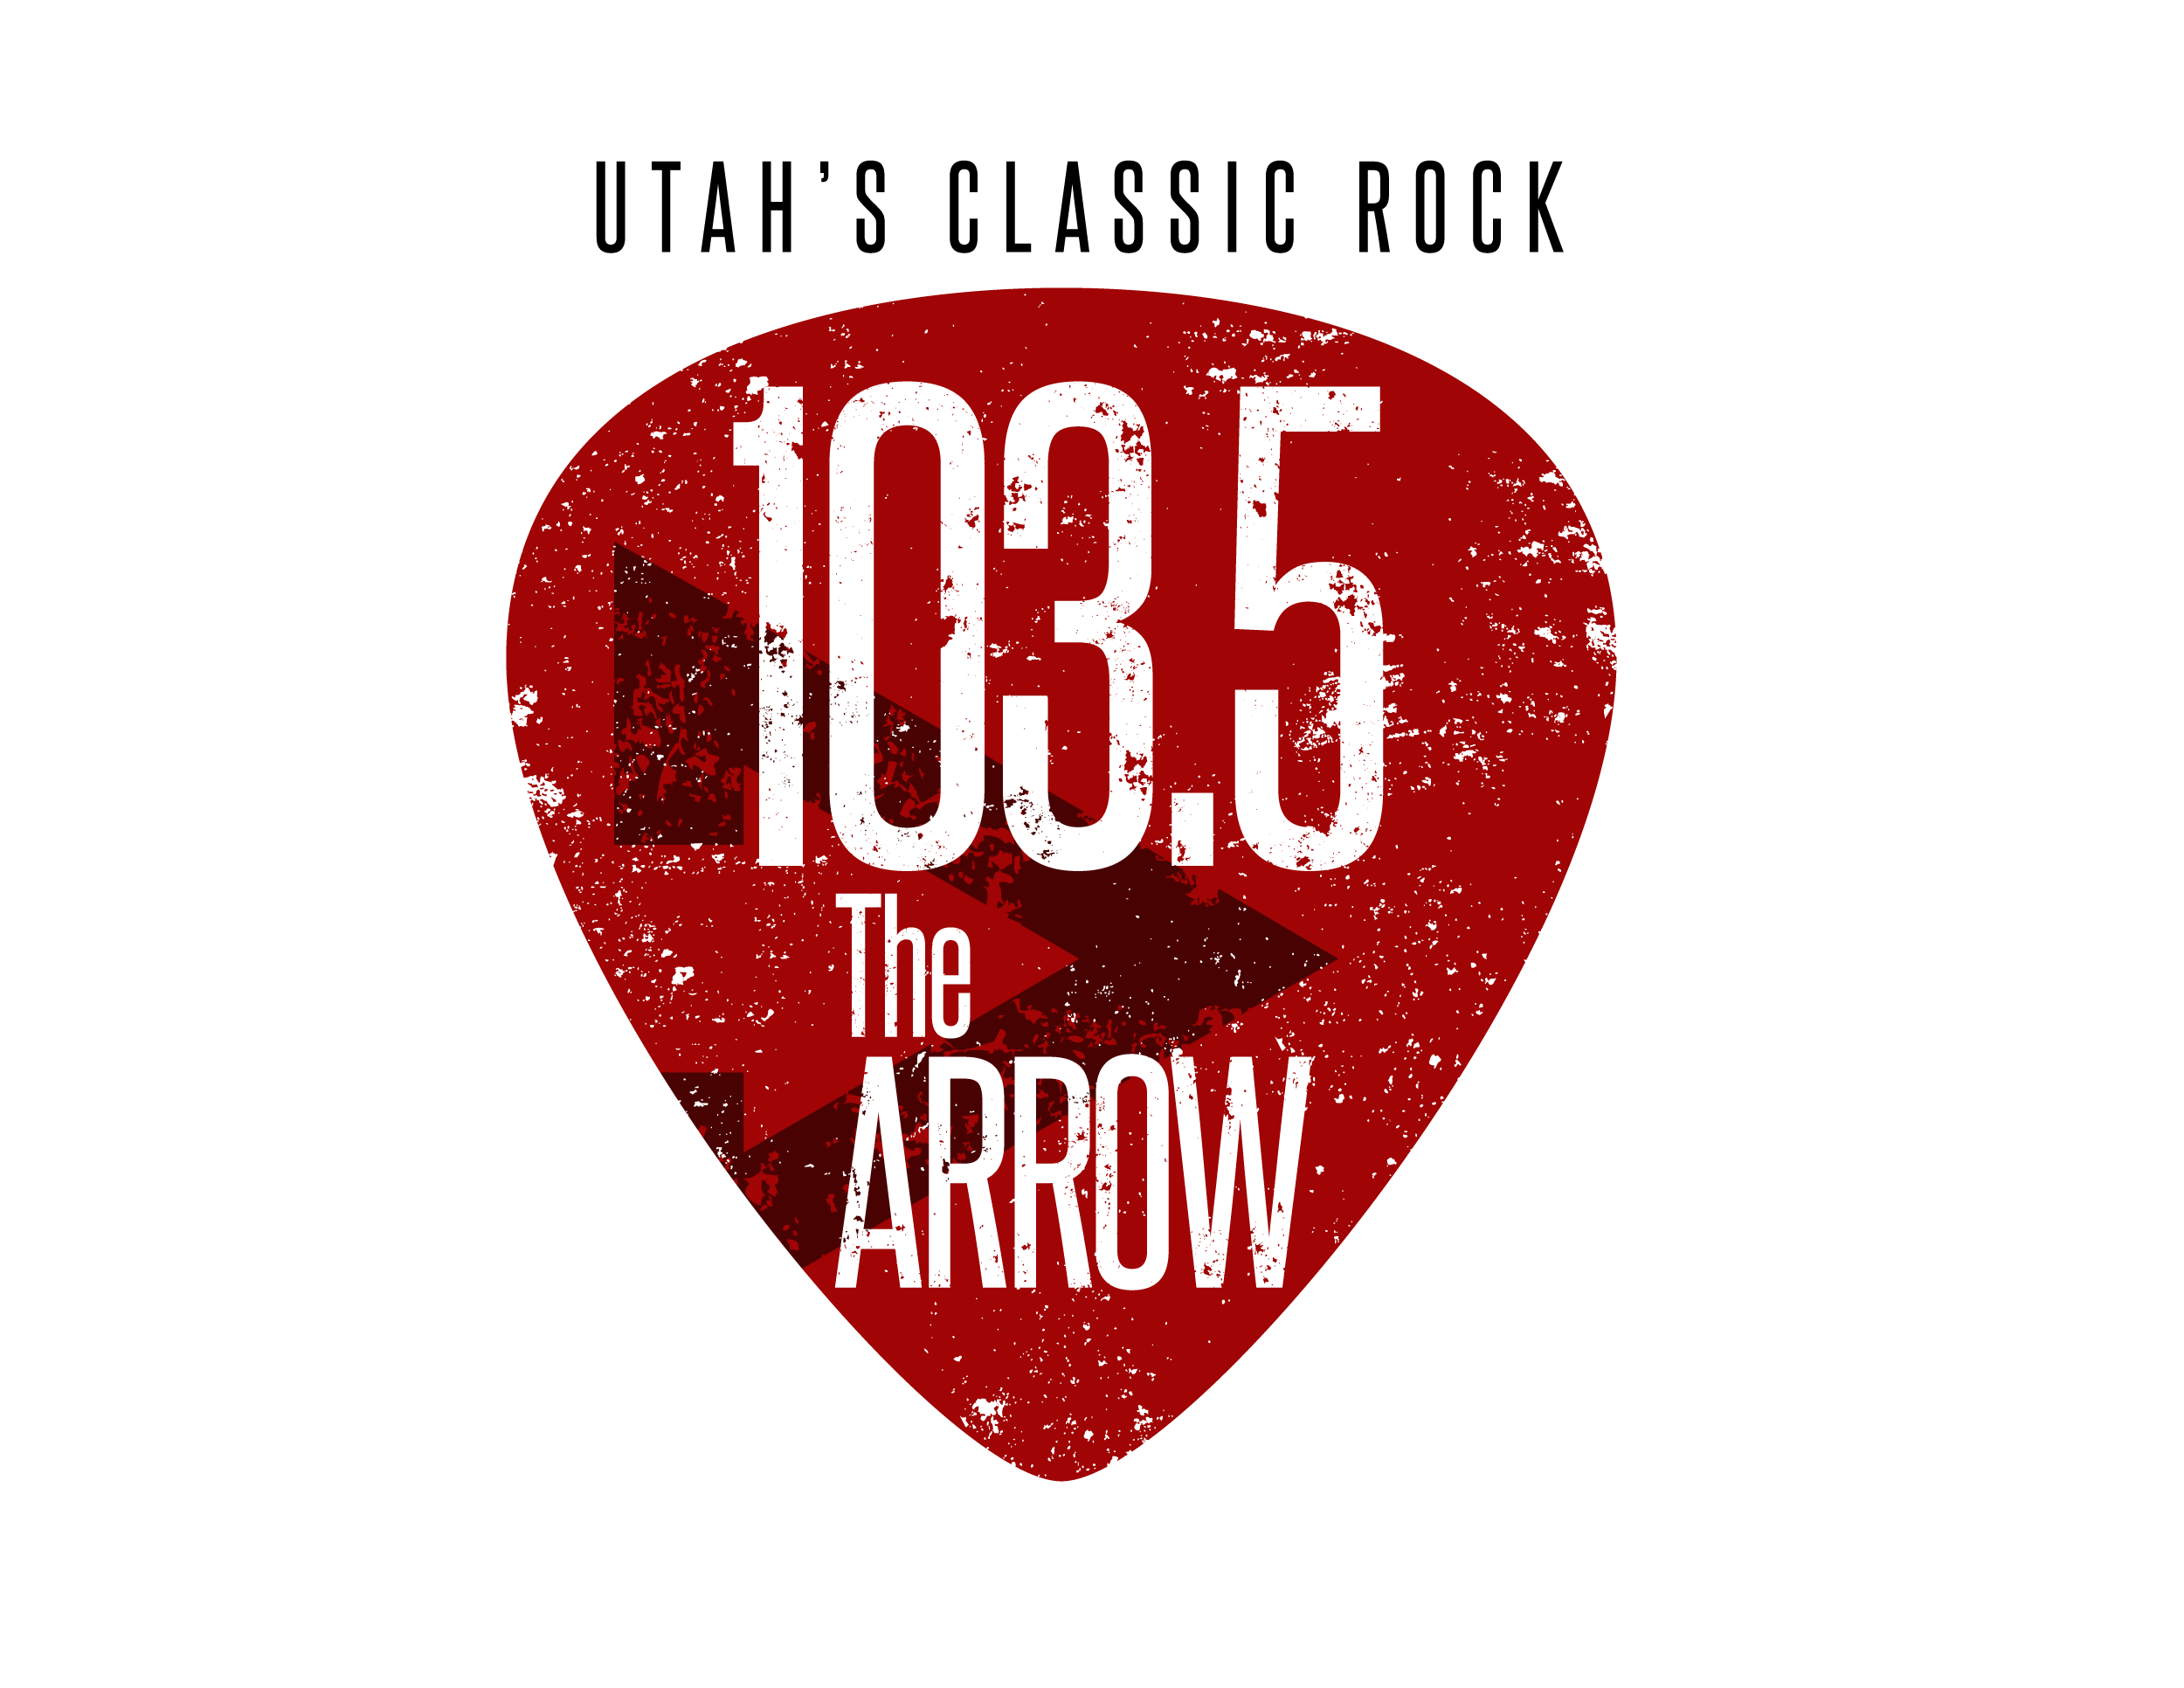 Arrow color logo